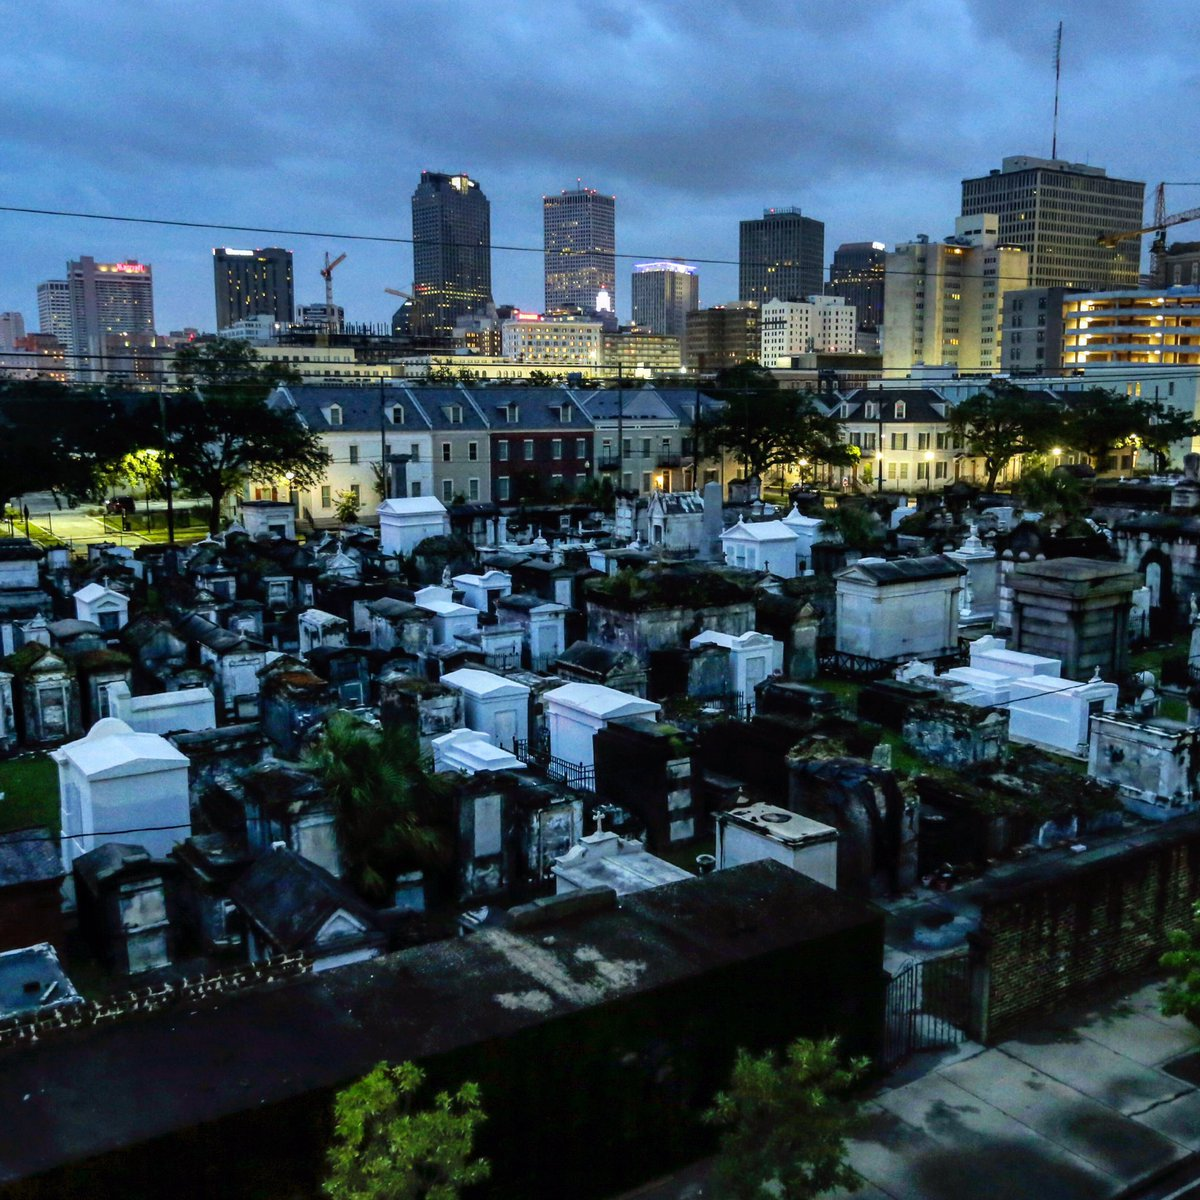 At first light, the city of New Orleans is no longer threatened by storm surge swelling the Mississippi River 2 to 3 feet above flood stage, as the eye of Tropical Storm Barry nears the Louisiana southwest coast near Morgan City Saturday, July 13, 2019. #TropicalStormBarry